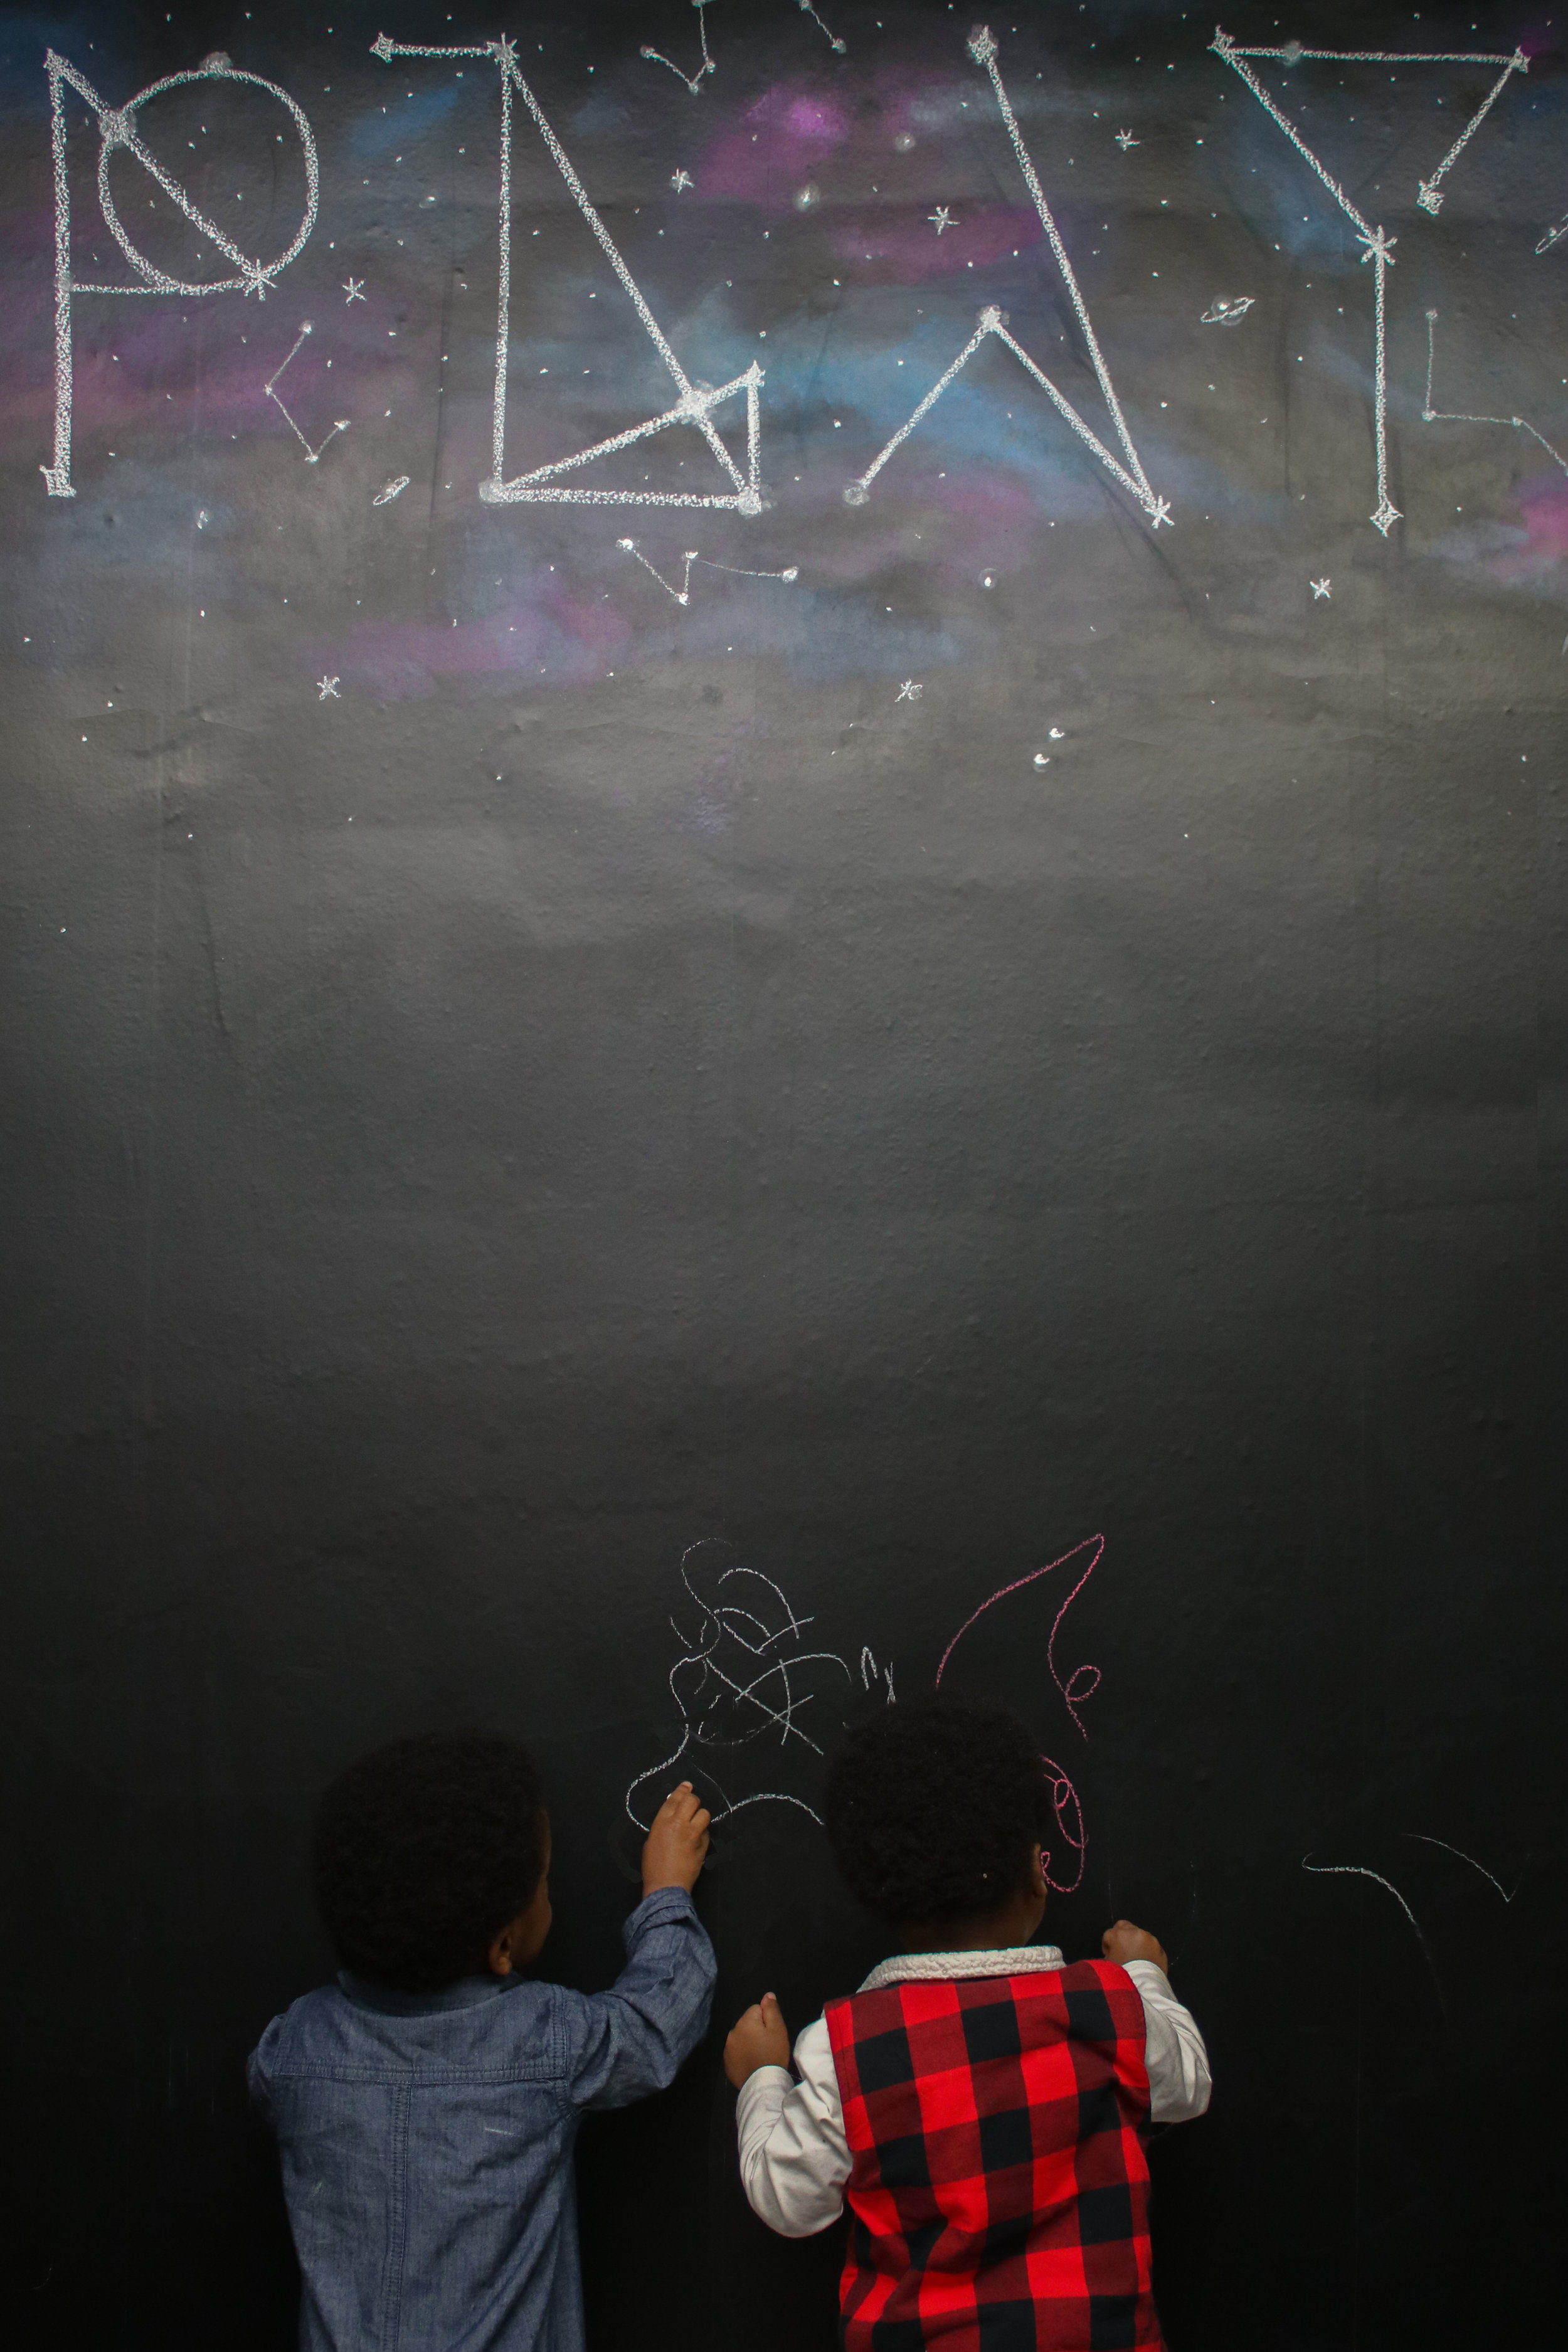 DIY Chalkboard Wall in Under 30 Minutes!